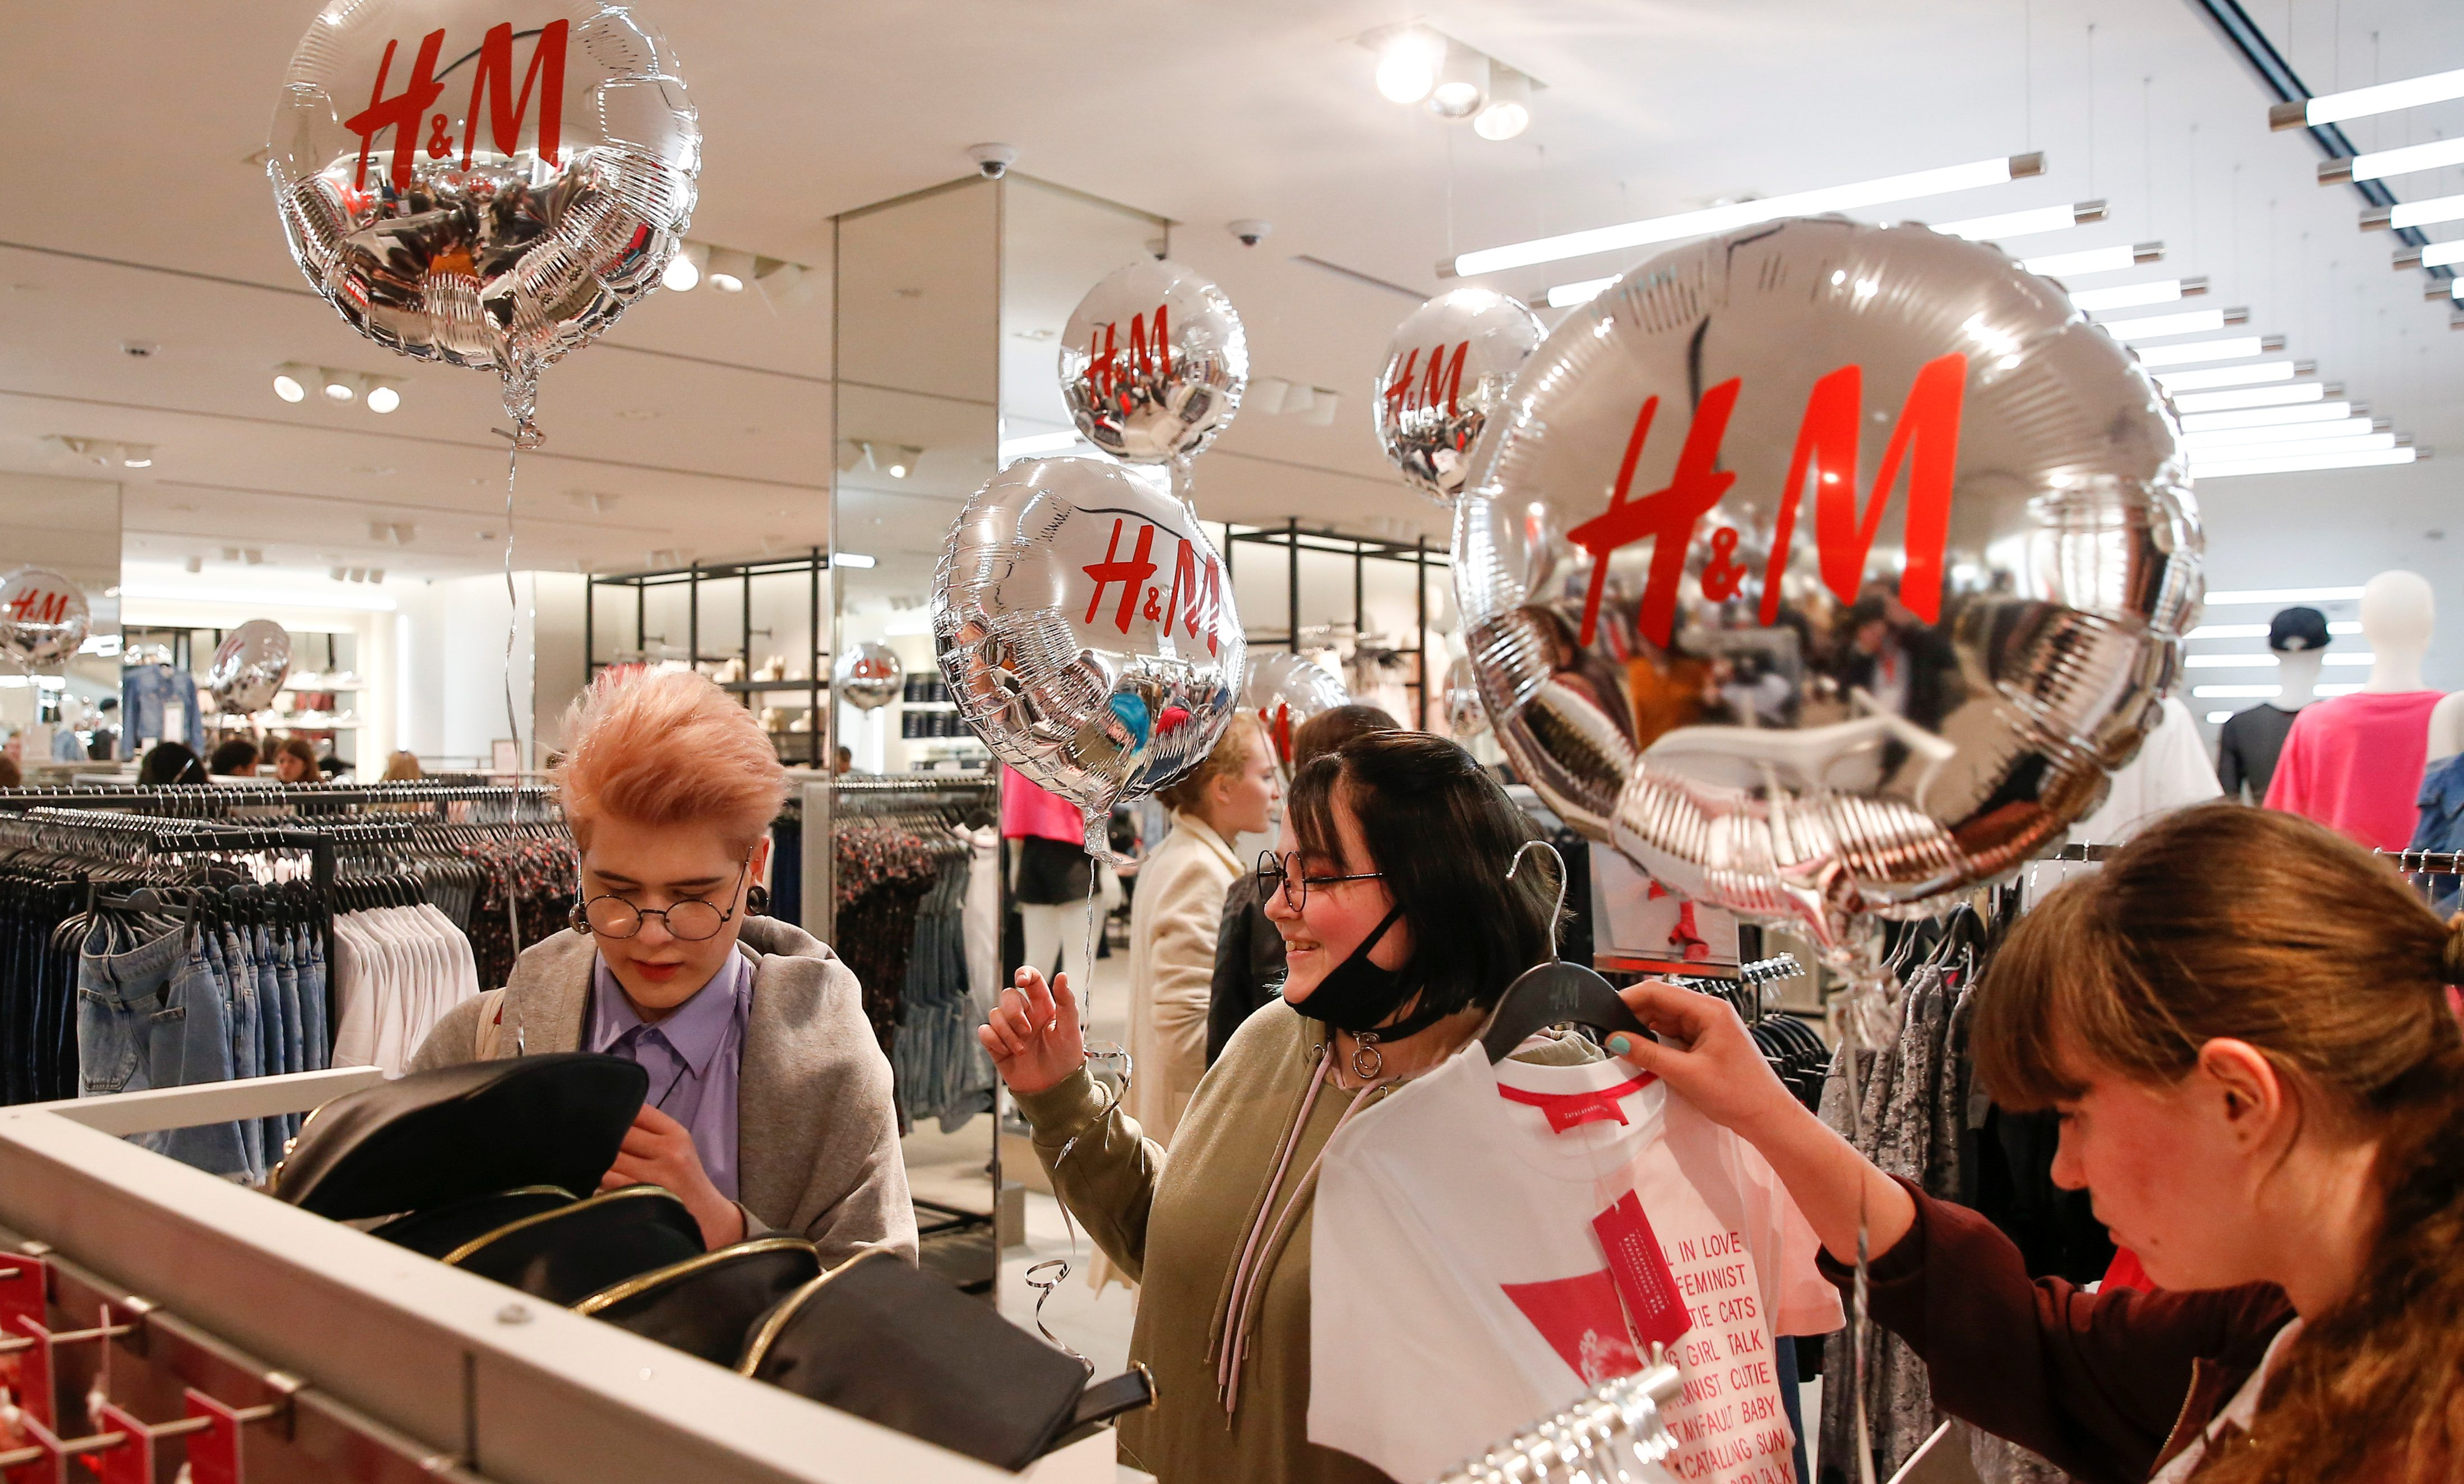 People shop at the Swedish fashion retailer Hennes & Mauritz (H&M) store on its opening day in central Moscow, Russia, May 27, 2017. REUTERS/Maxim Shemetov - RC110FF91010